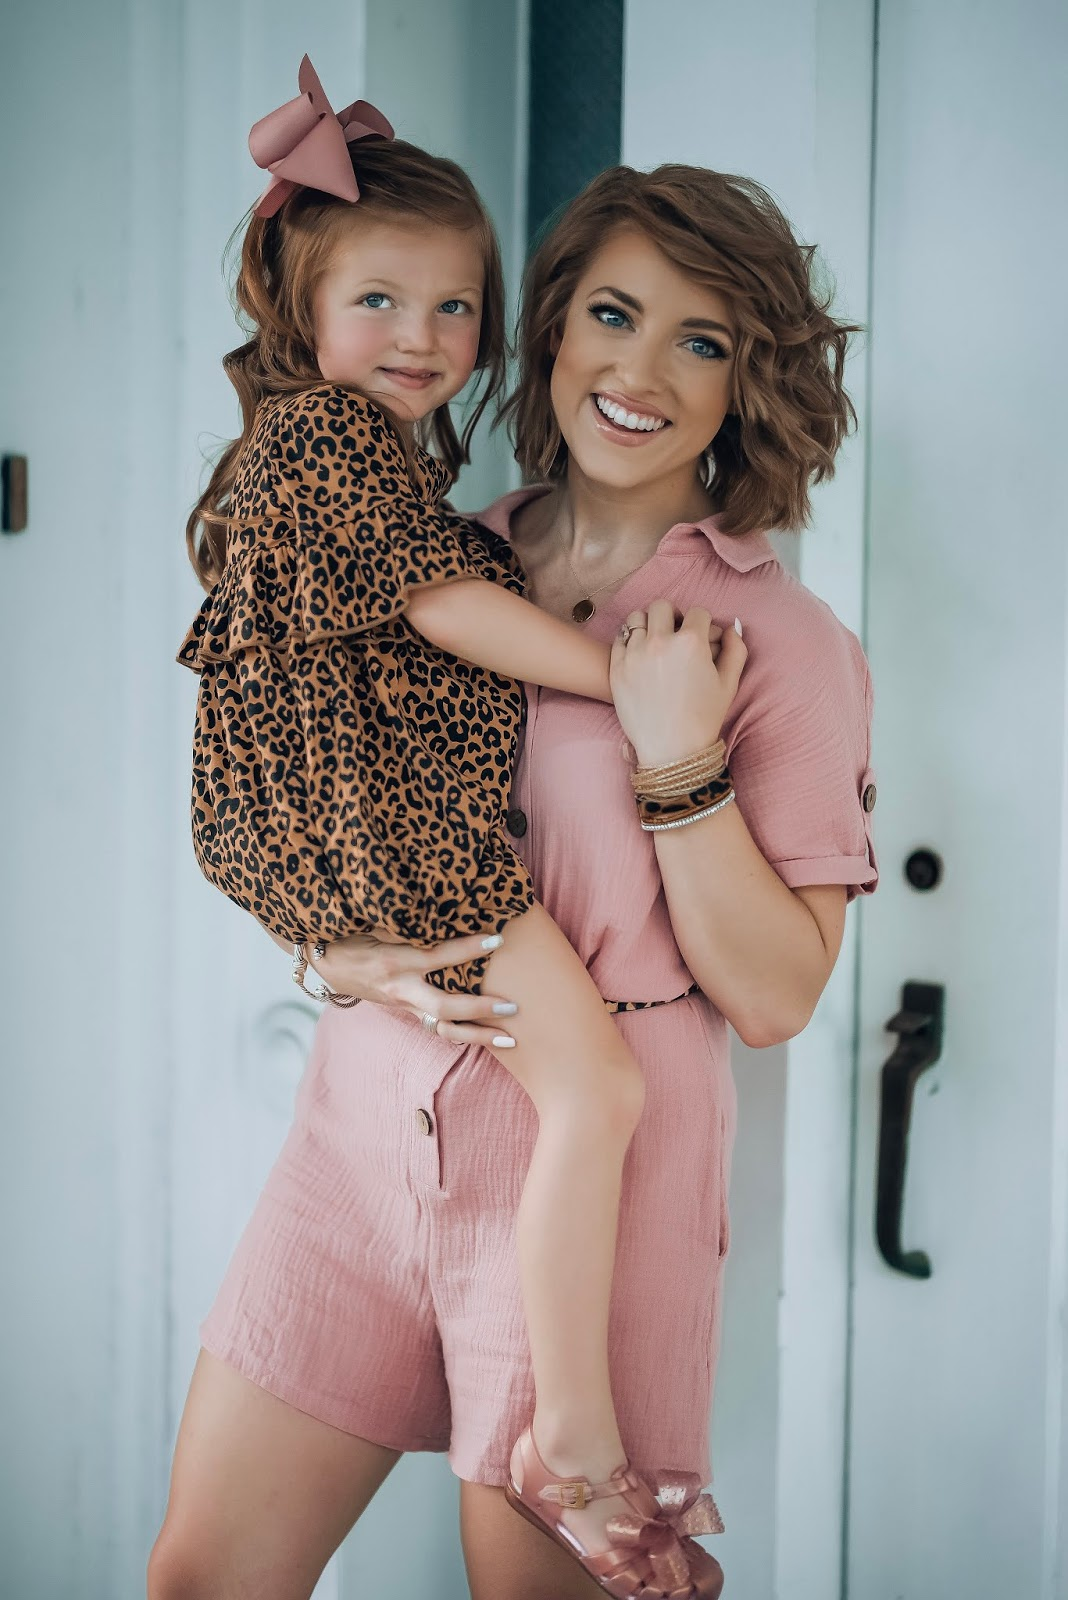 Pink + Leopard: Under $30 Amazon Romper + Recent Amazon Favorites - Something Delightful Blog